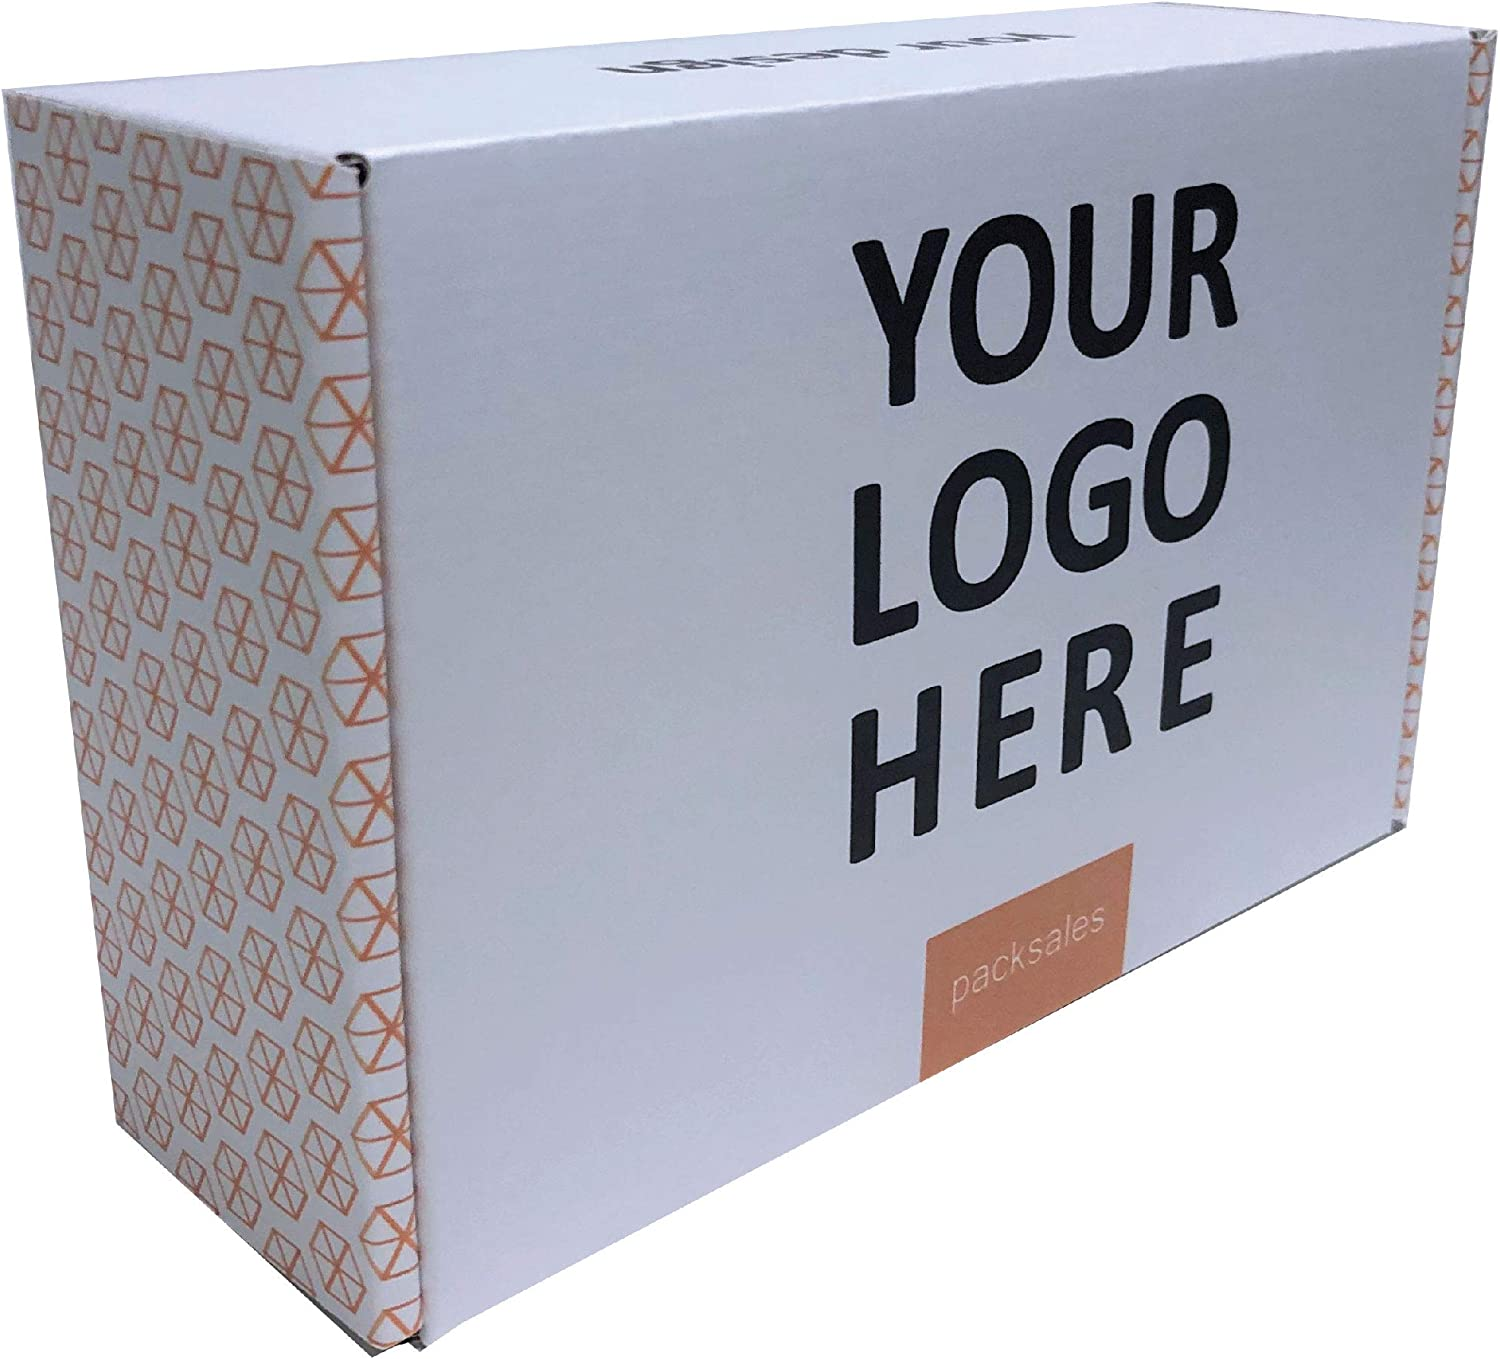 Make your own 8x6x3 custom boxes mailer on cheap outside printed Rapid rise the